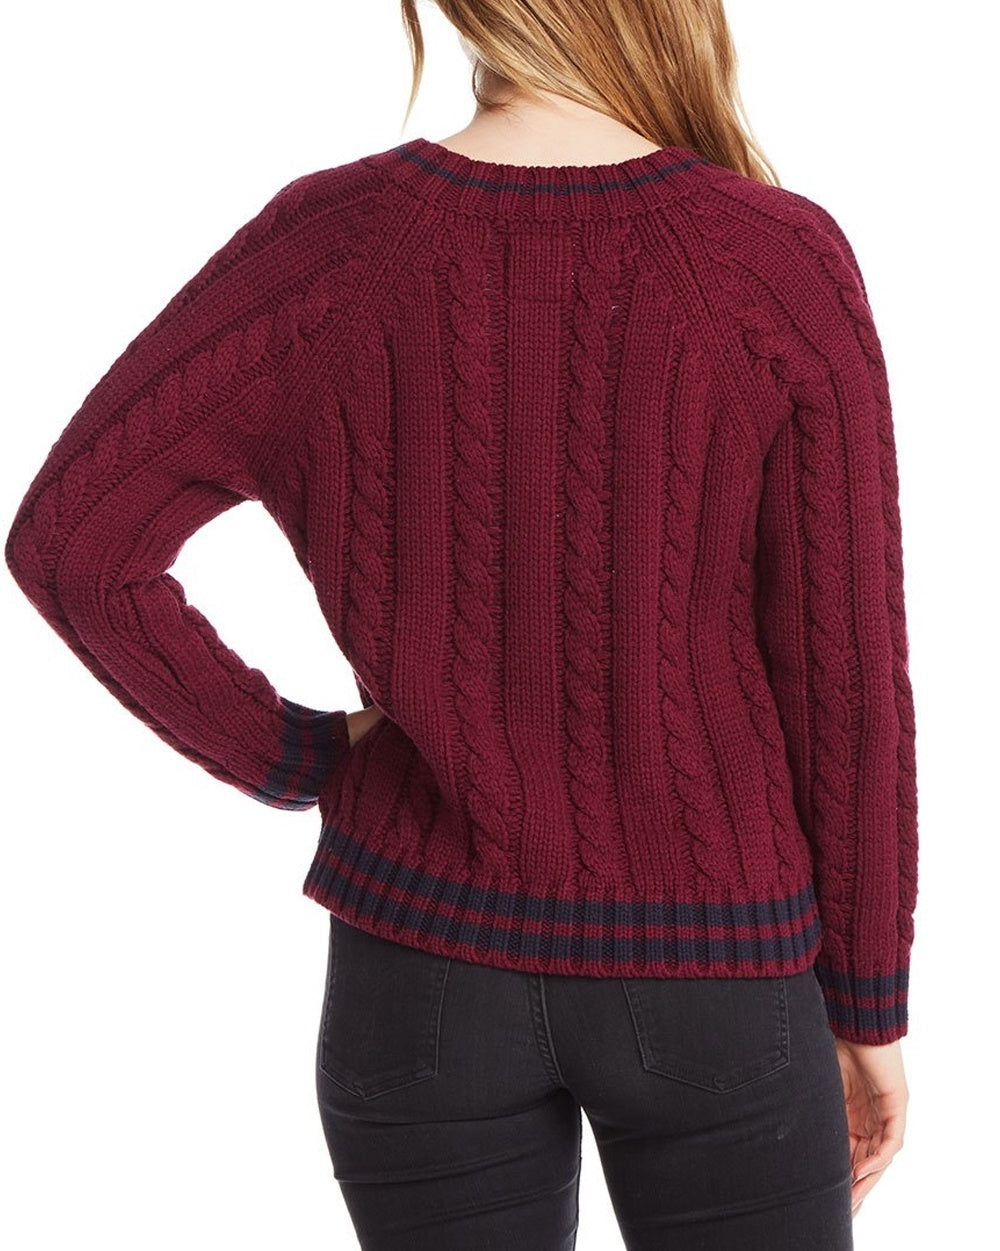 Striped Cable Knit Zip Sweater